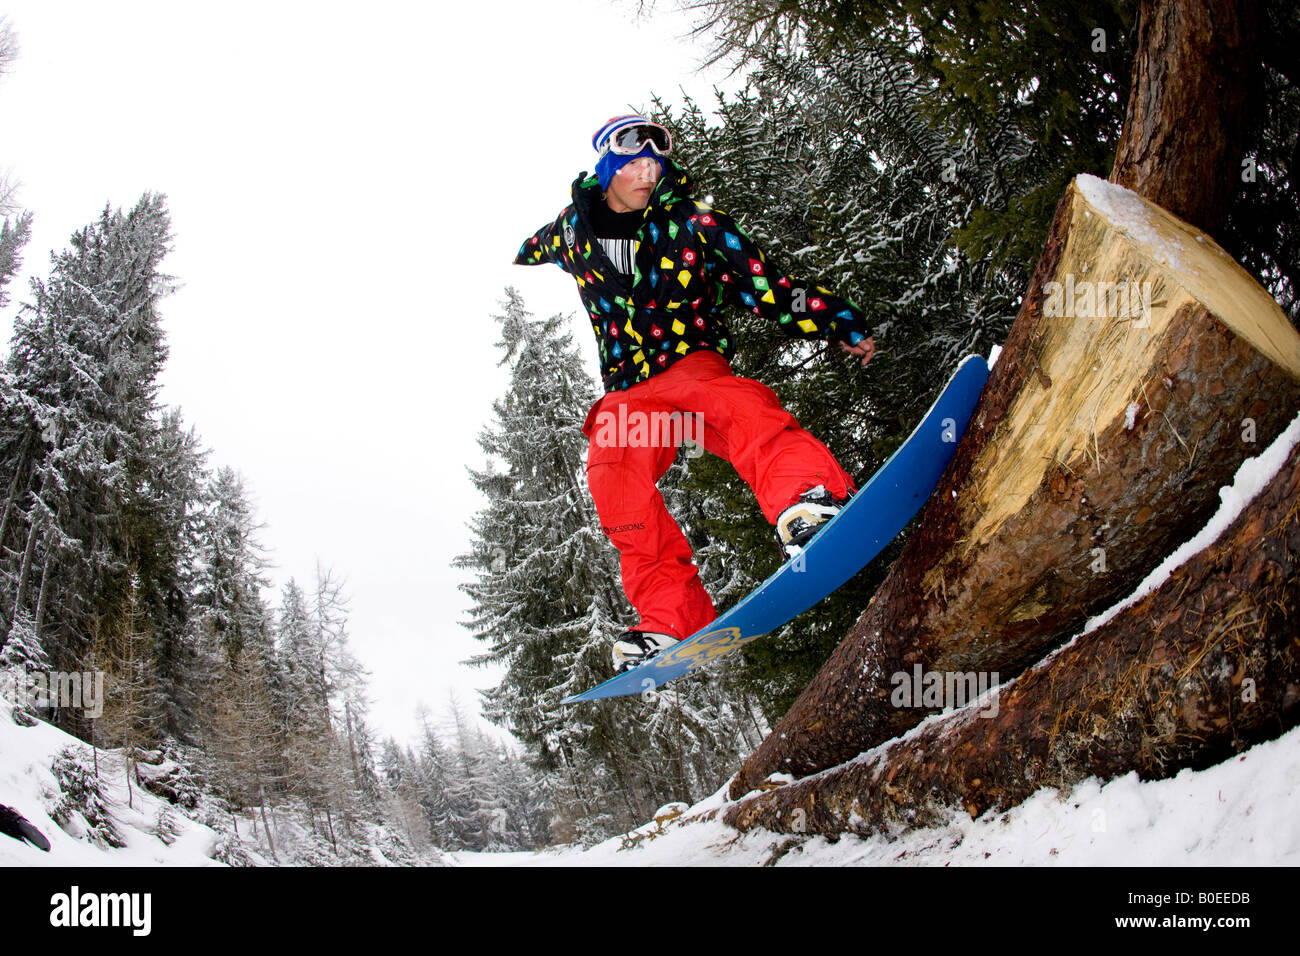 Snowboarder slides a tree in the French Alps - Stock Image